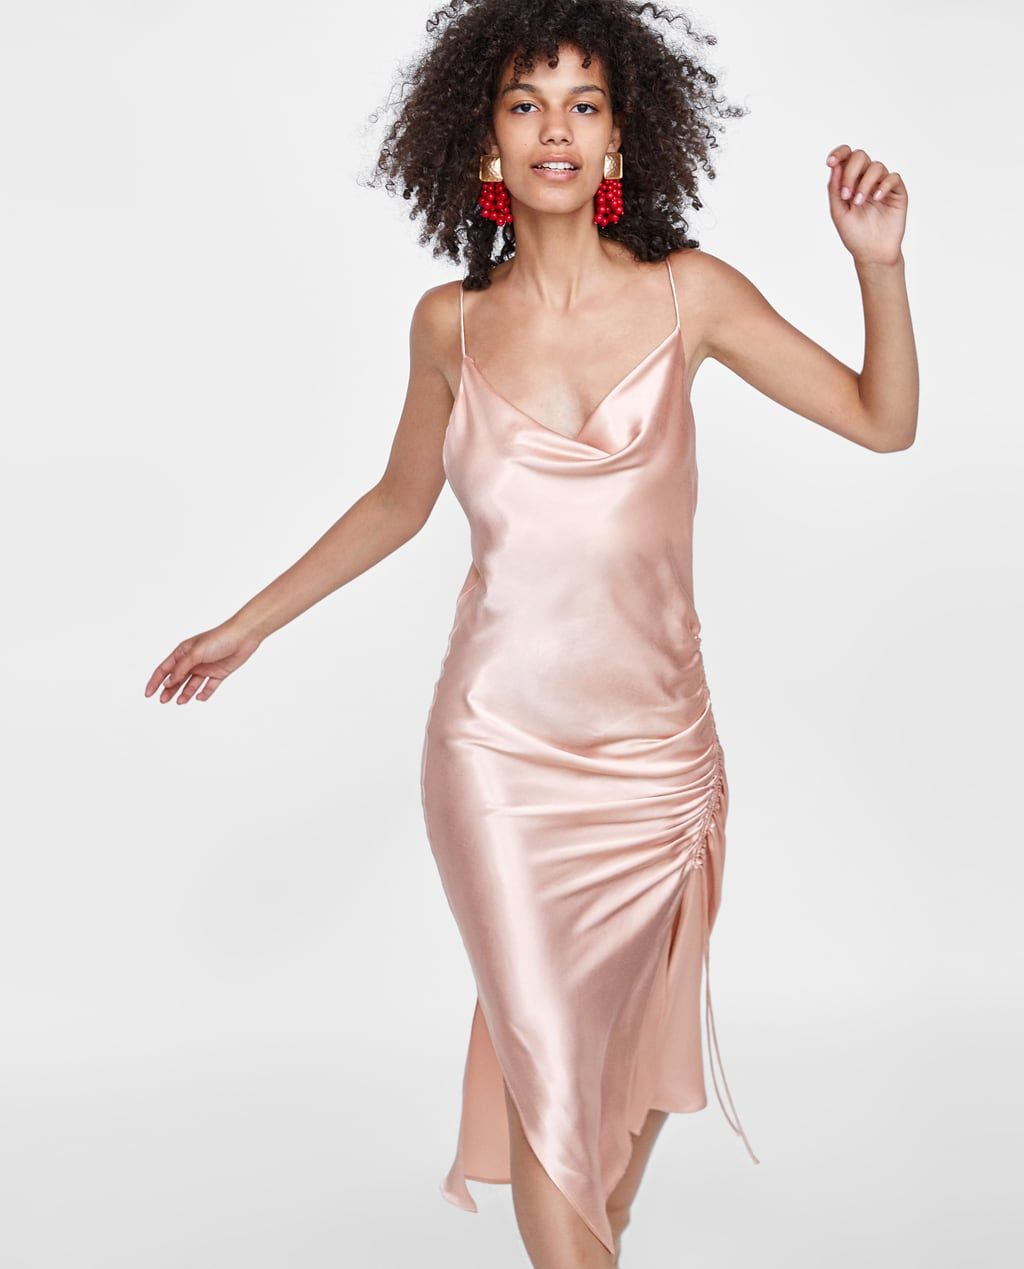 78b840e6 Image 2 of DRAPED CAMISOLE DRESS from Zara | SUMMA SUMMA THYME in ...